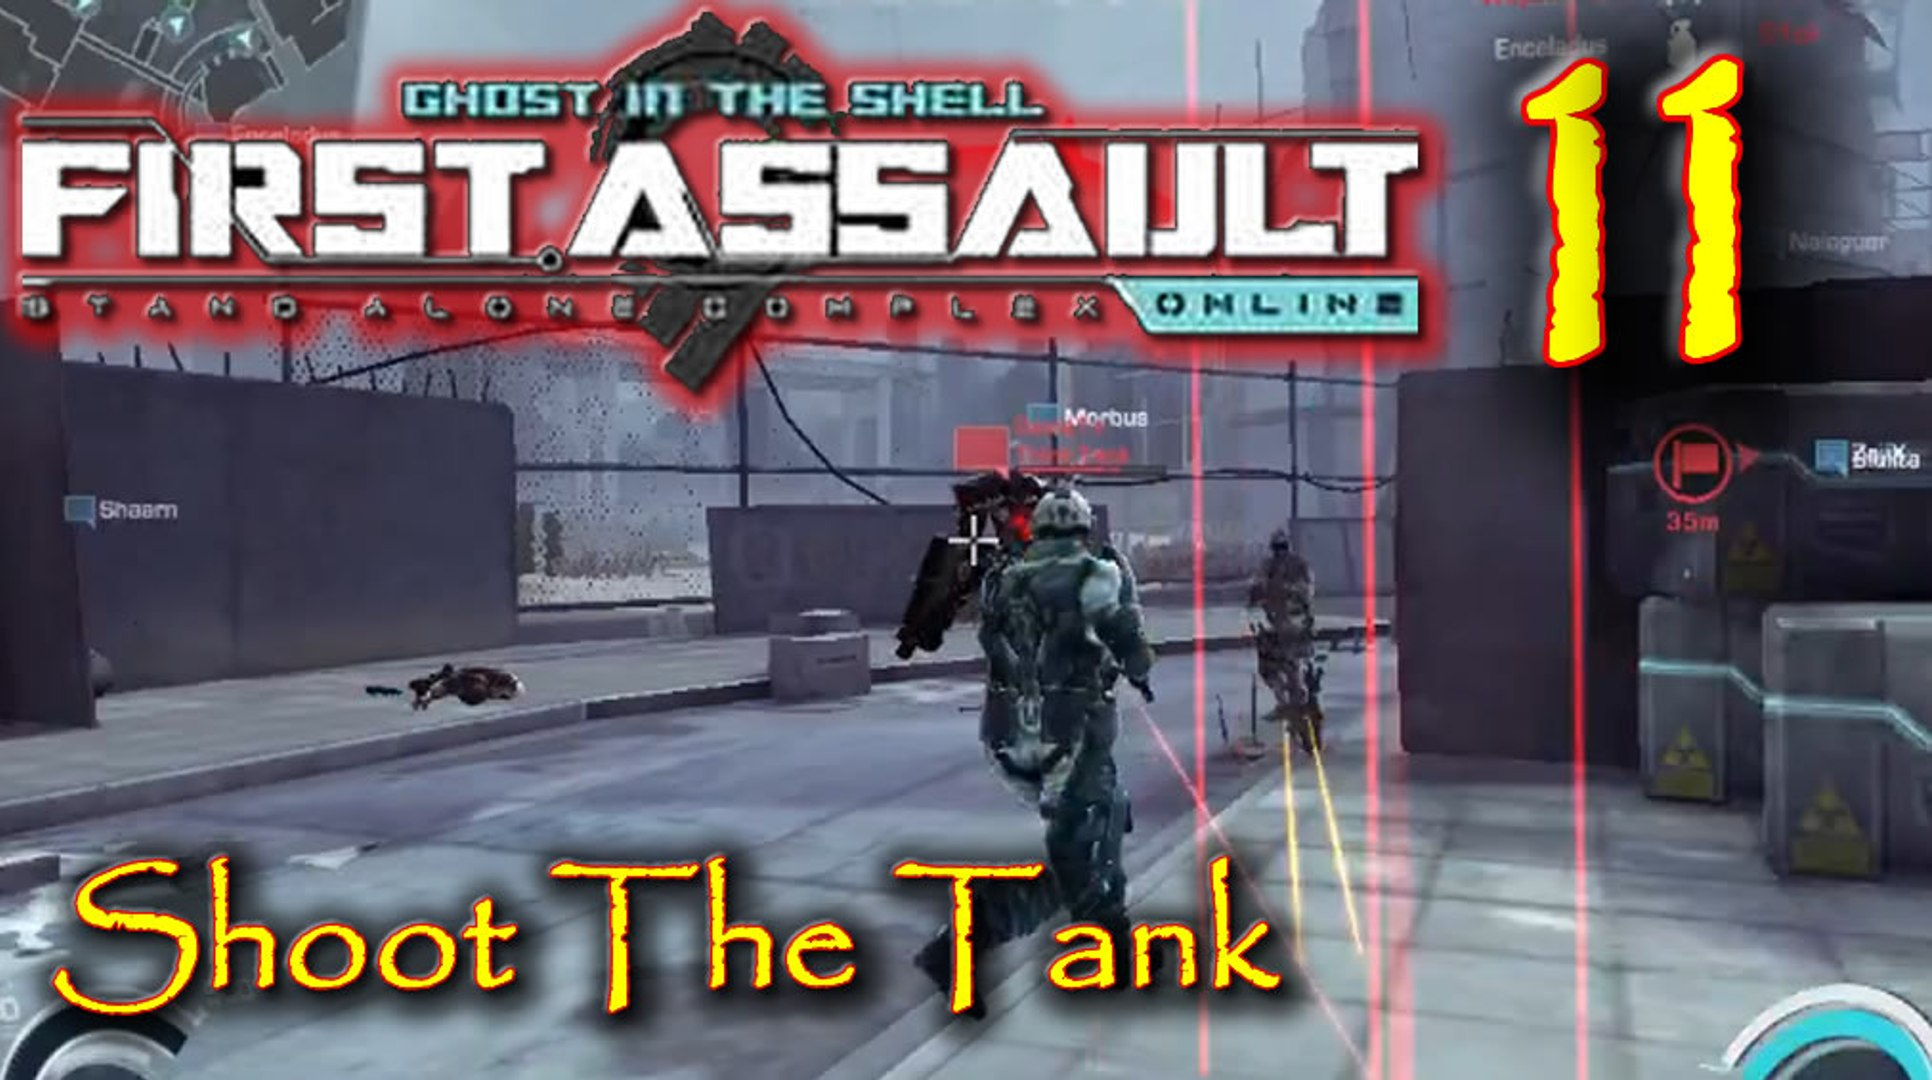 Shoot The Tank Lets Play Ghost In The Shell Stand Alone Complex First Assault Online Episode 11